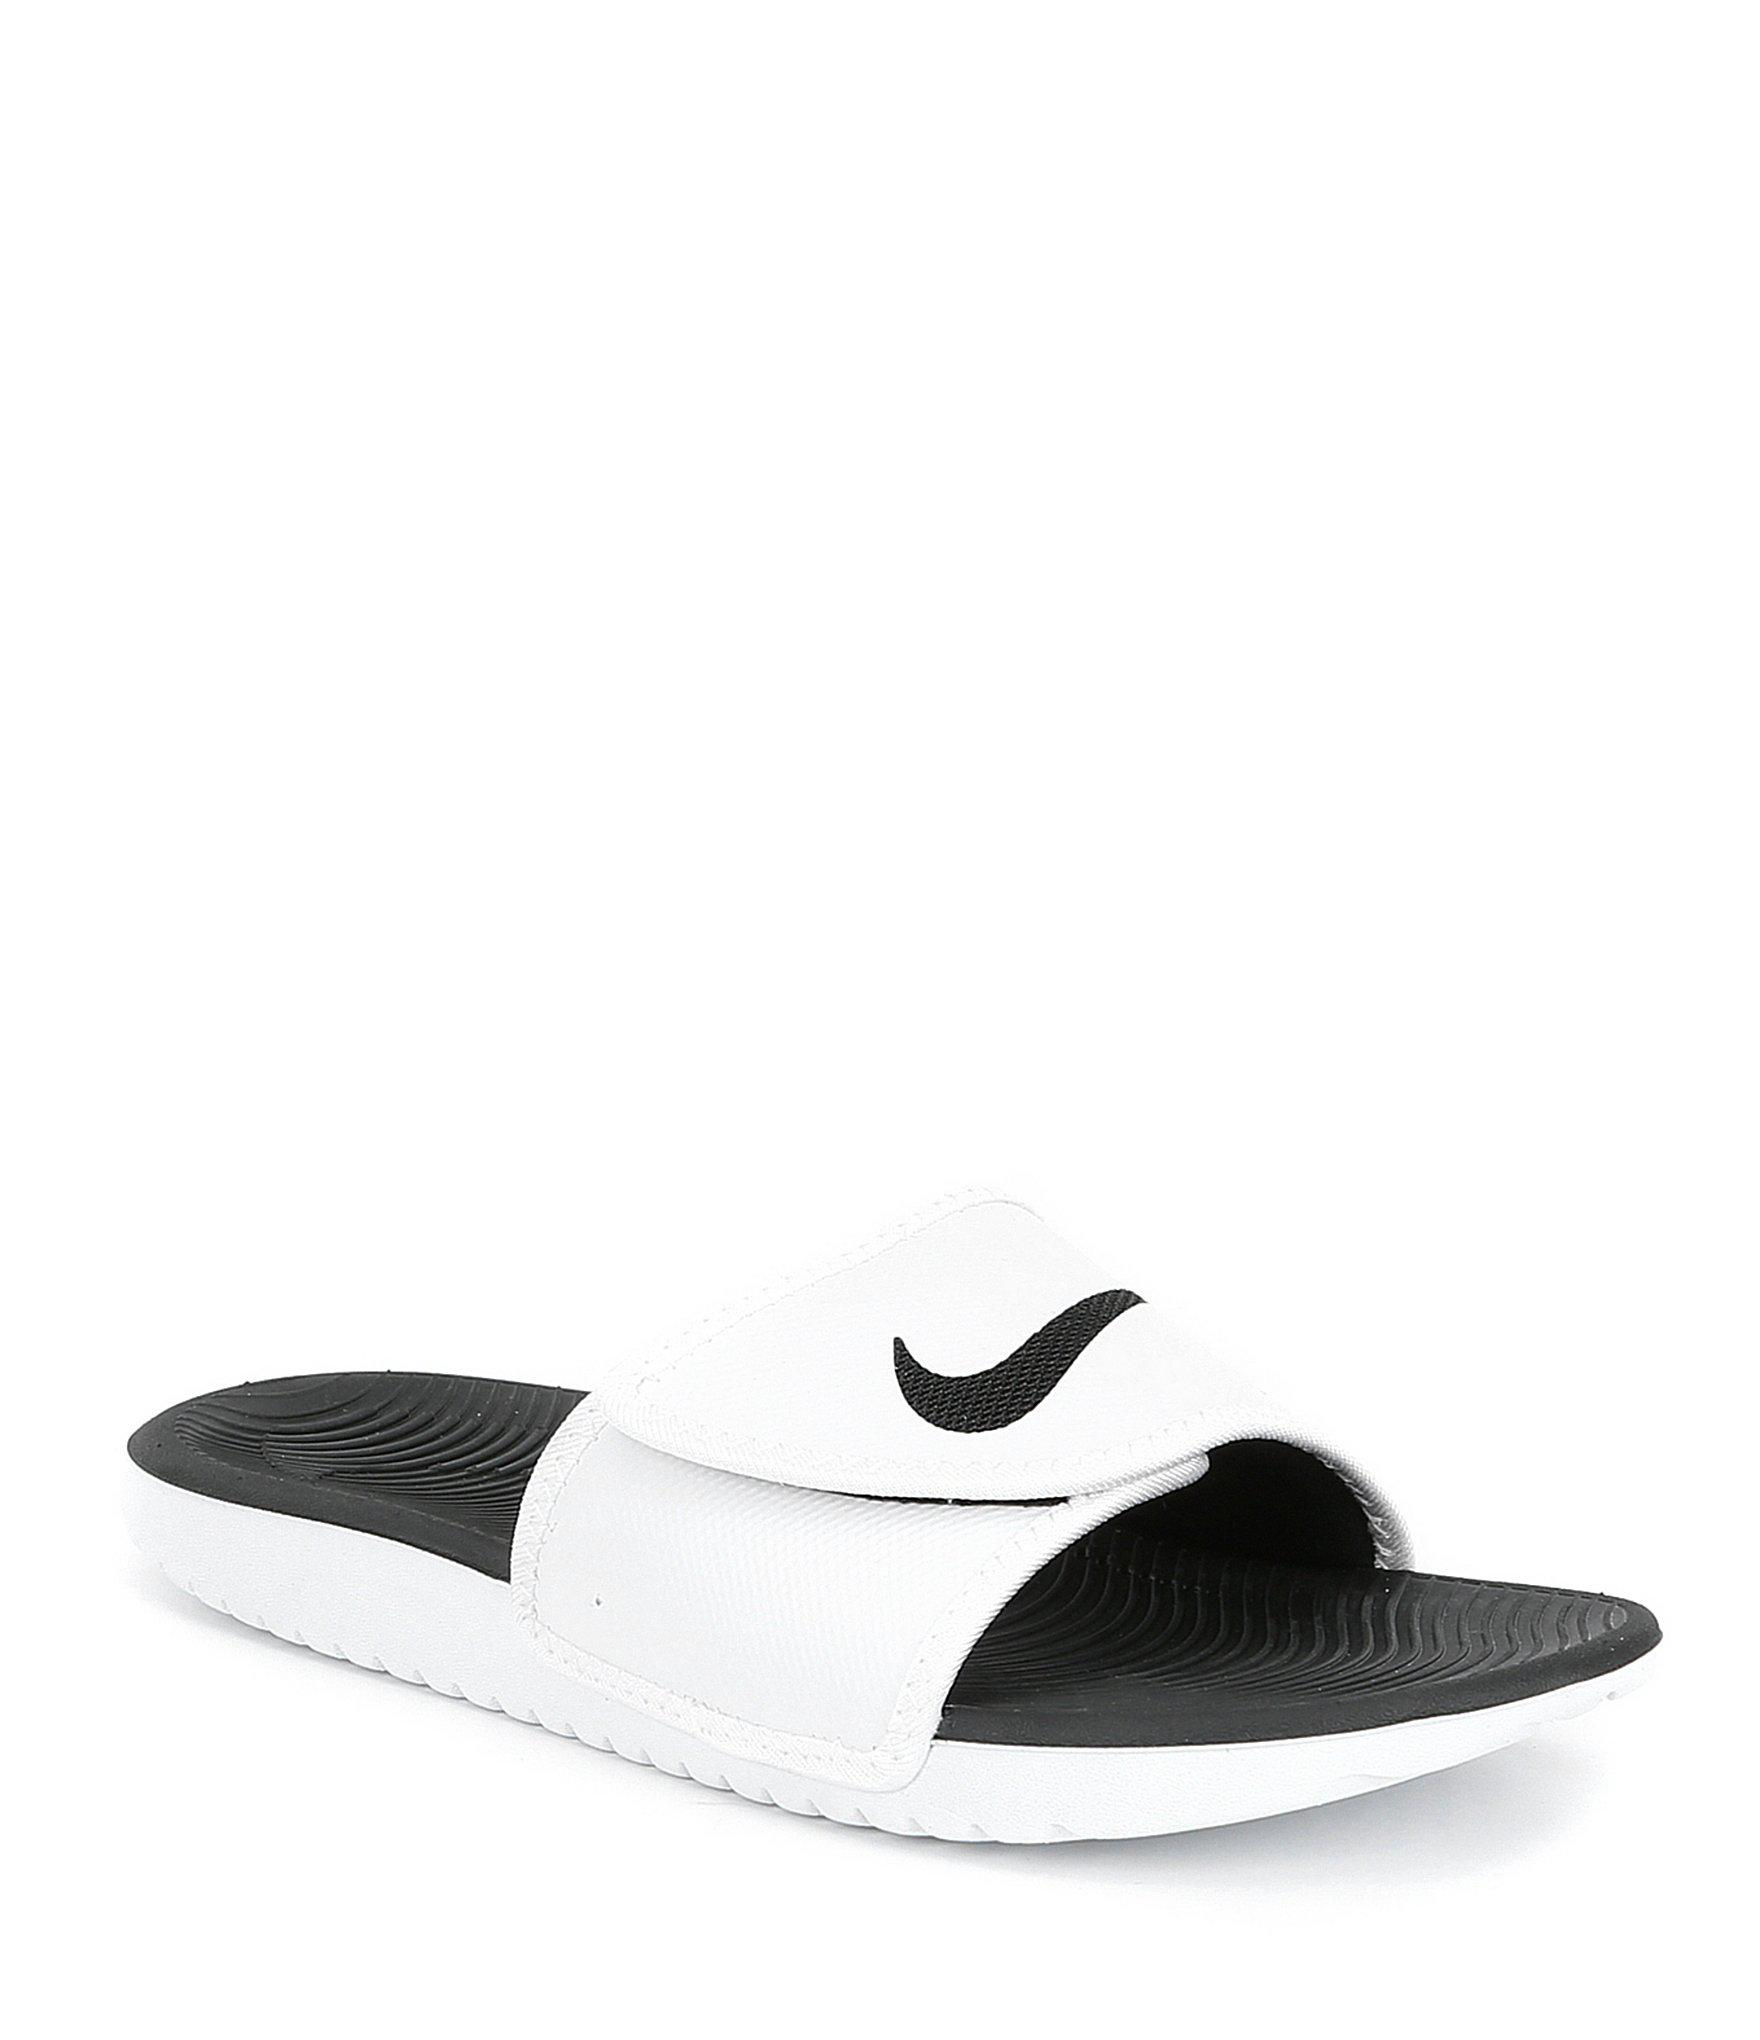 b6df1df57836 Lyst - Nike Men s Kawa Adjustable Slides in Black for Men